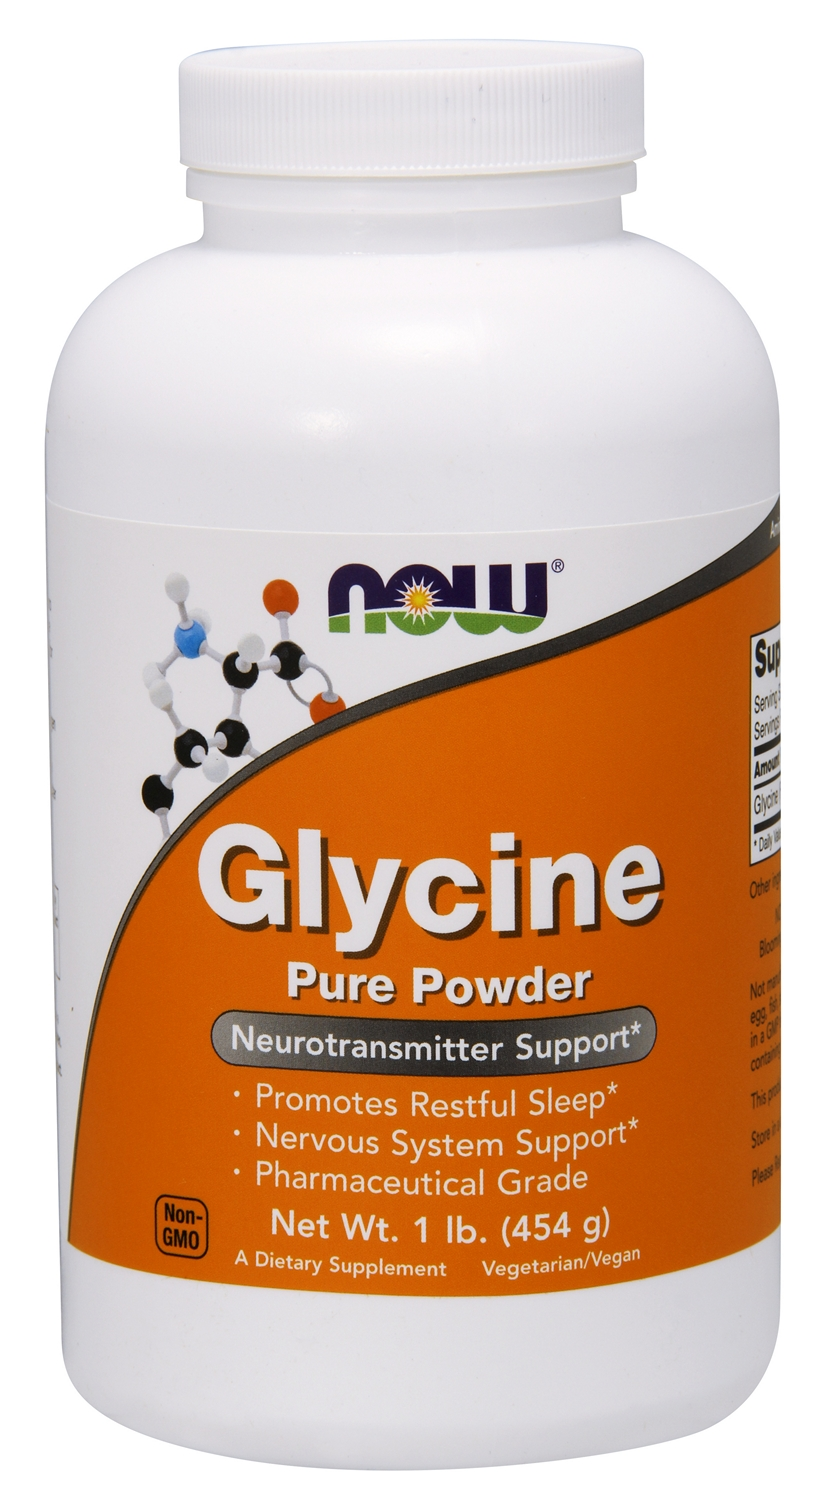 Glycine 100% Pure Powder 1 lb (454 g) by NOW